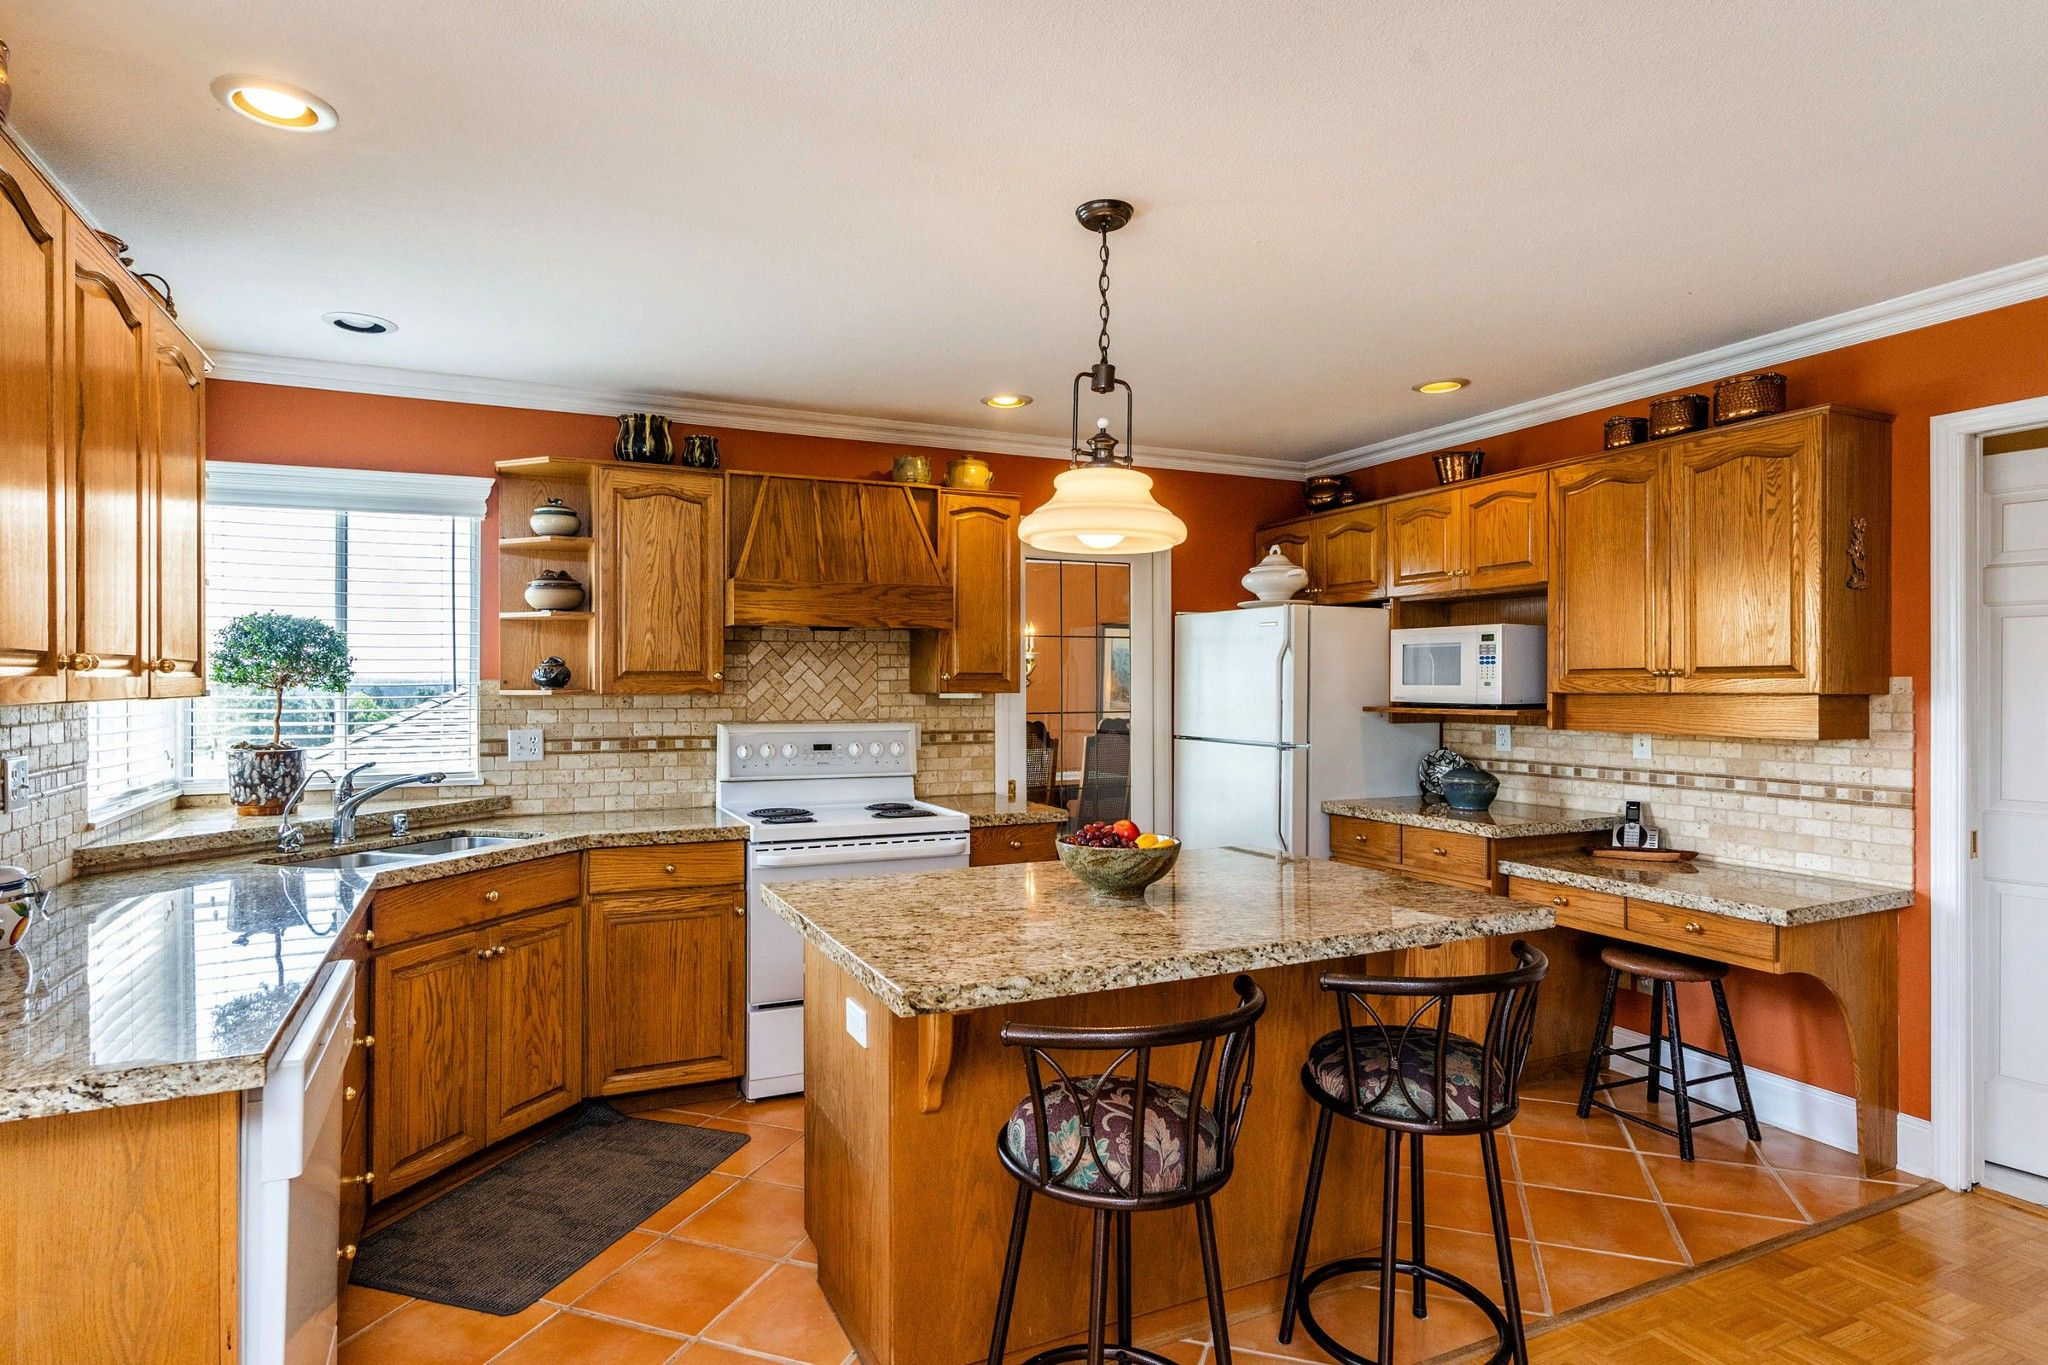 Photo 9: Photos: 6192 191A Street in Surrey: Cloverdale BC House for sale (Cloverdale)  : MLS®# R2279041